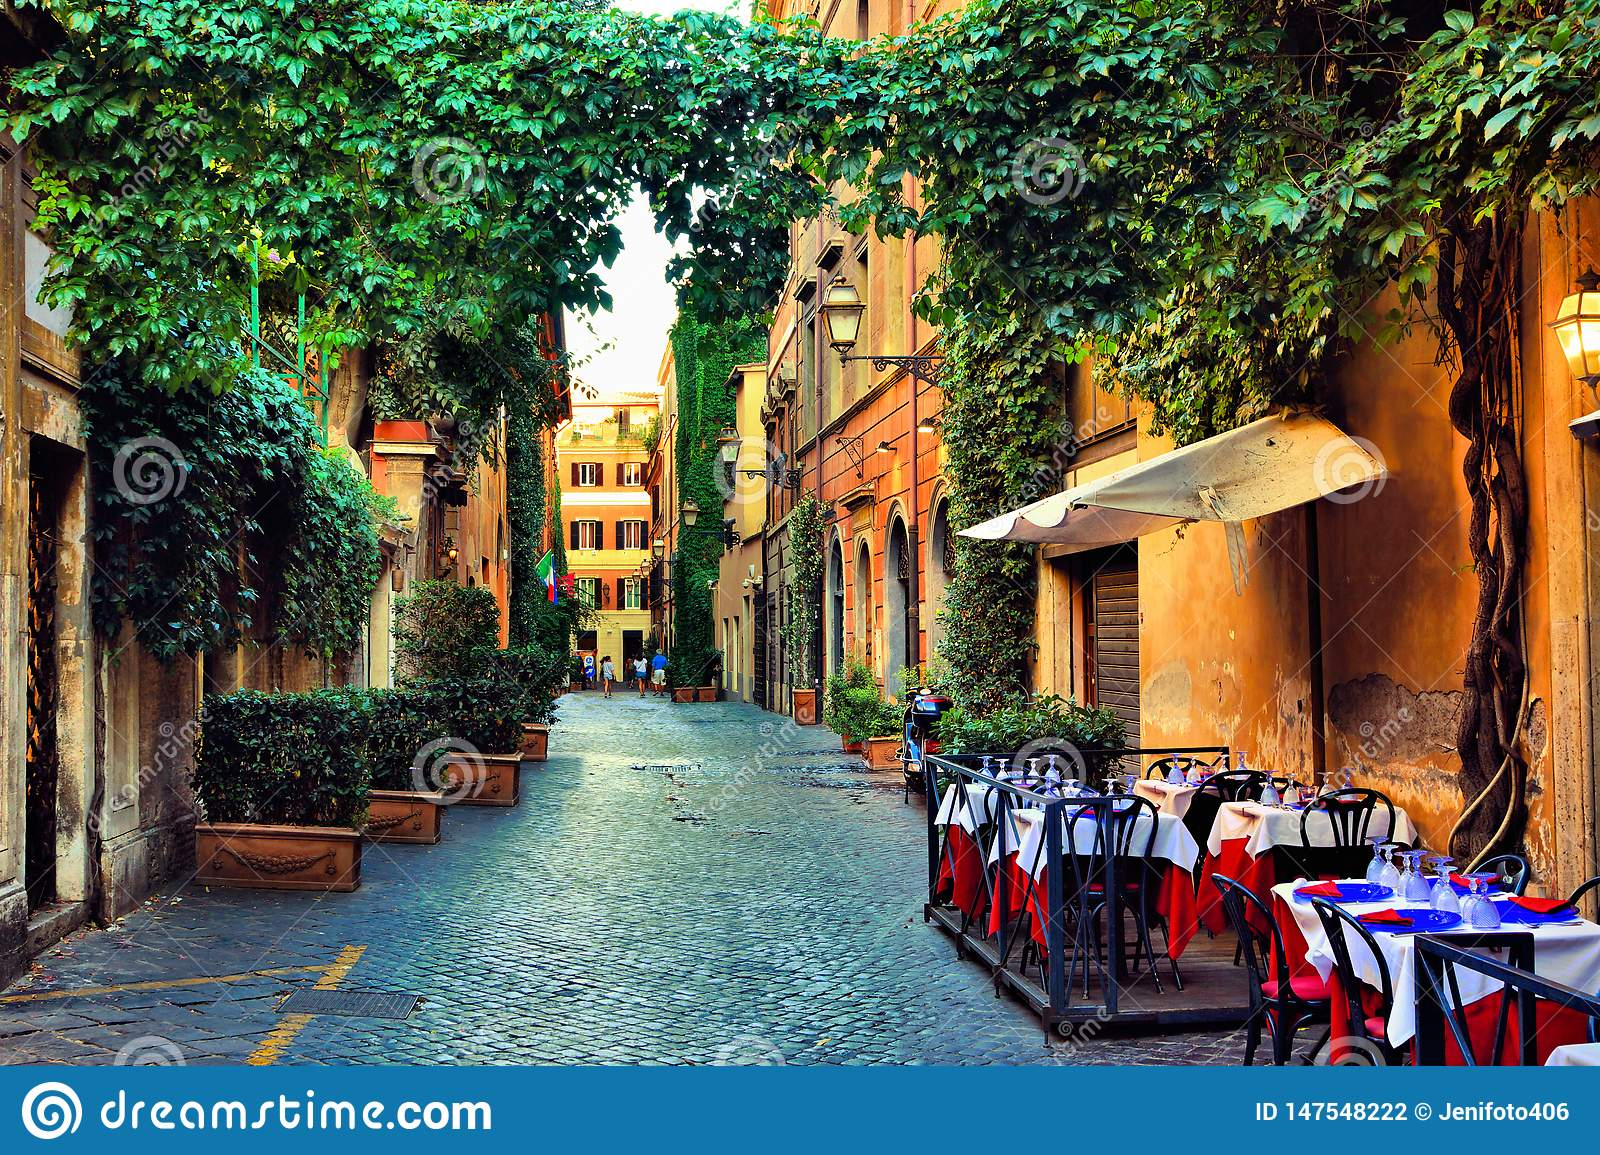 Old street in Rome with leafy vines and cafe tables, Italy